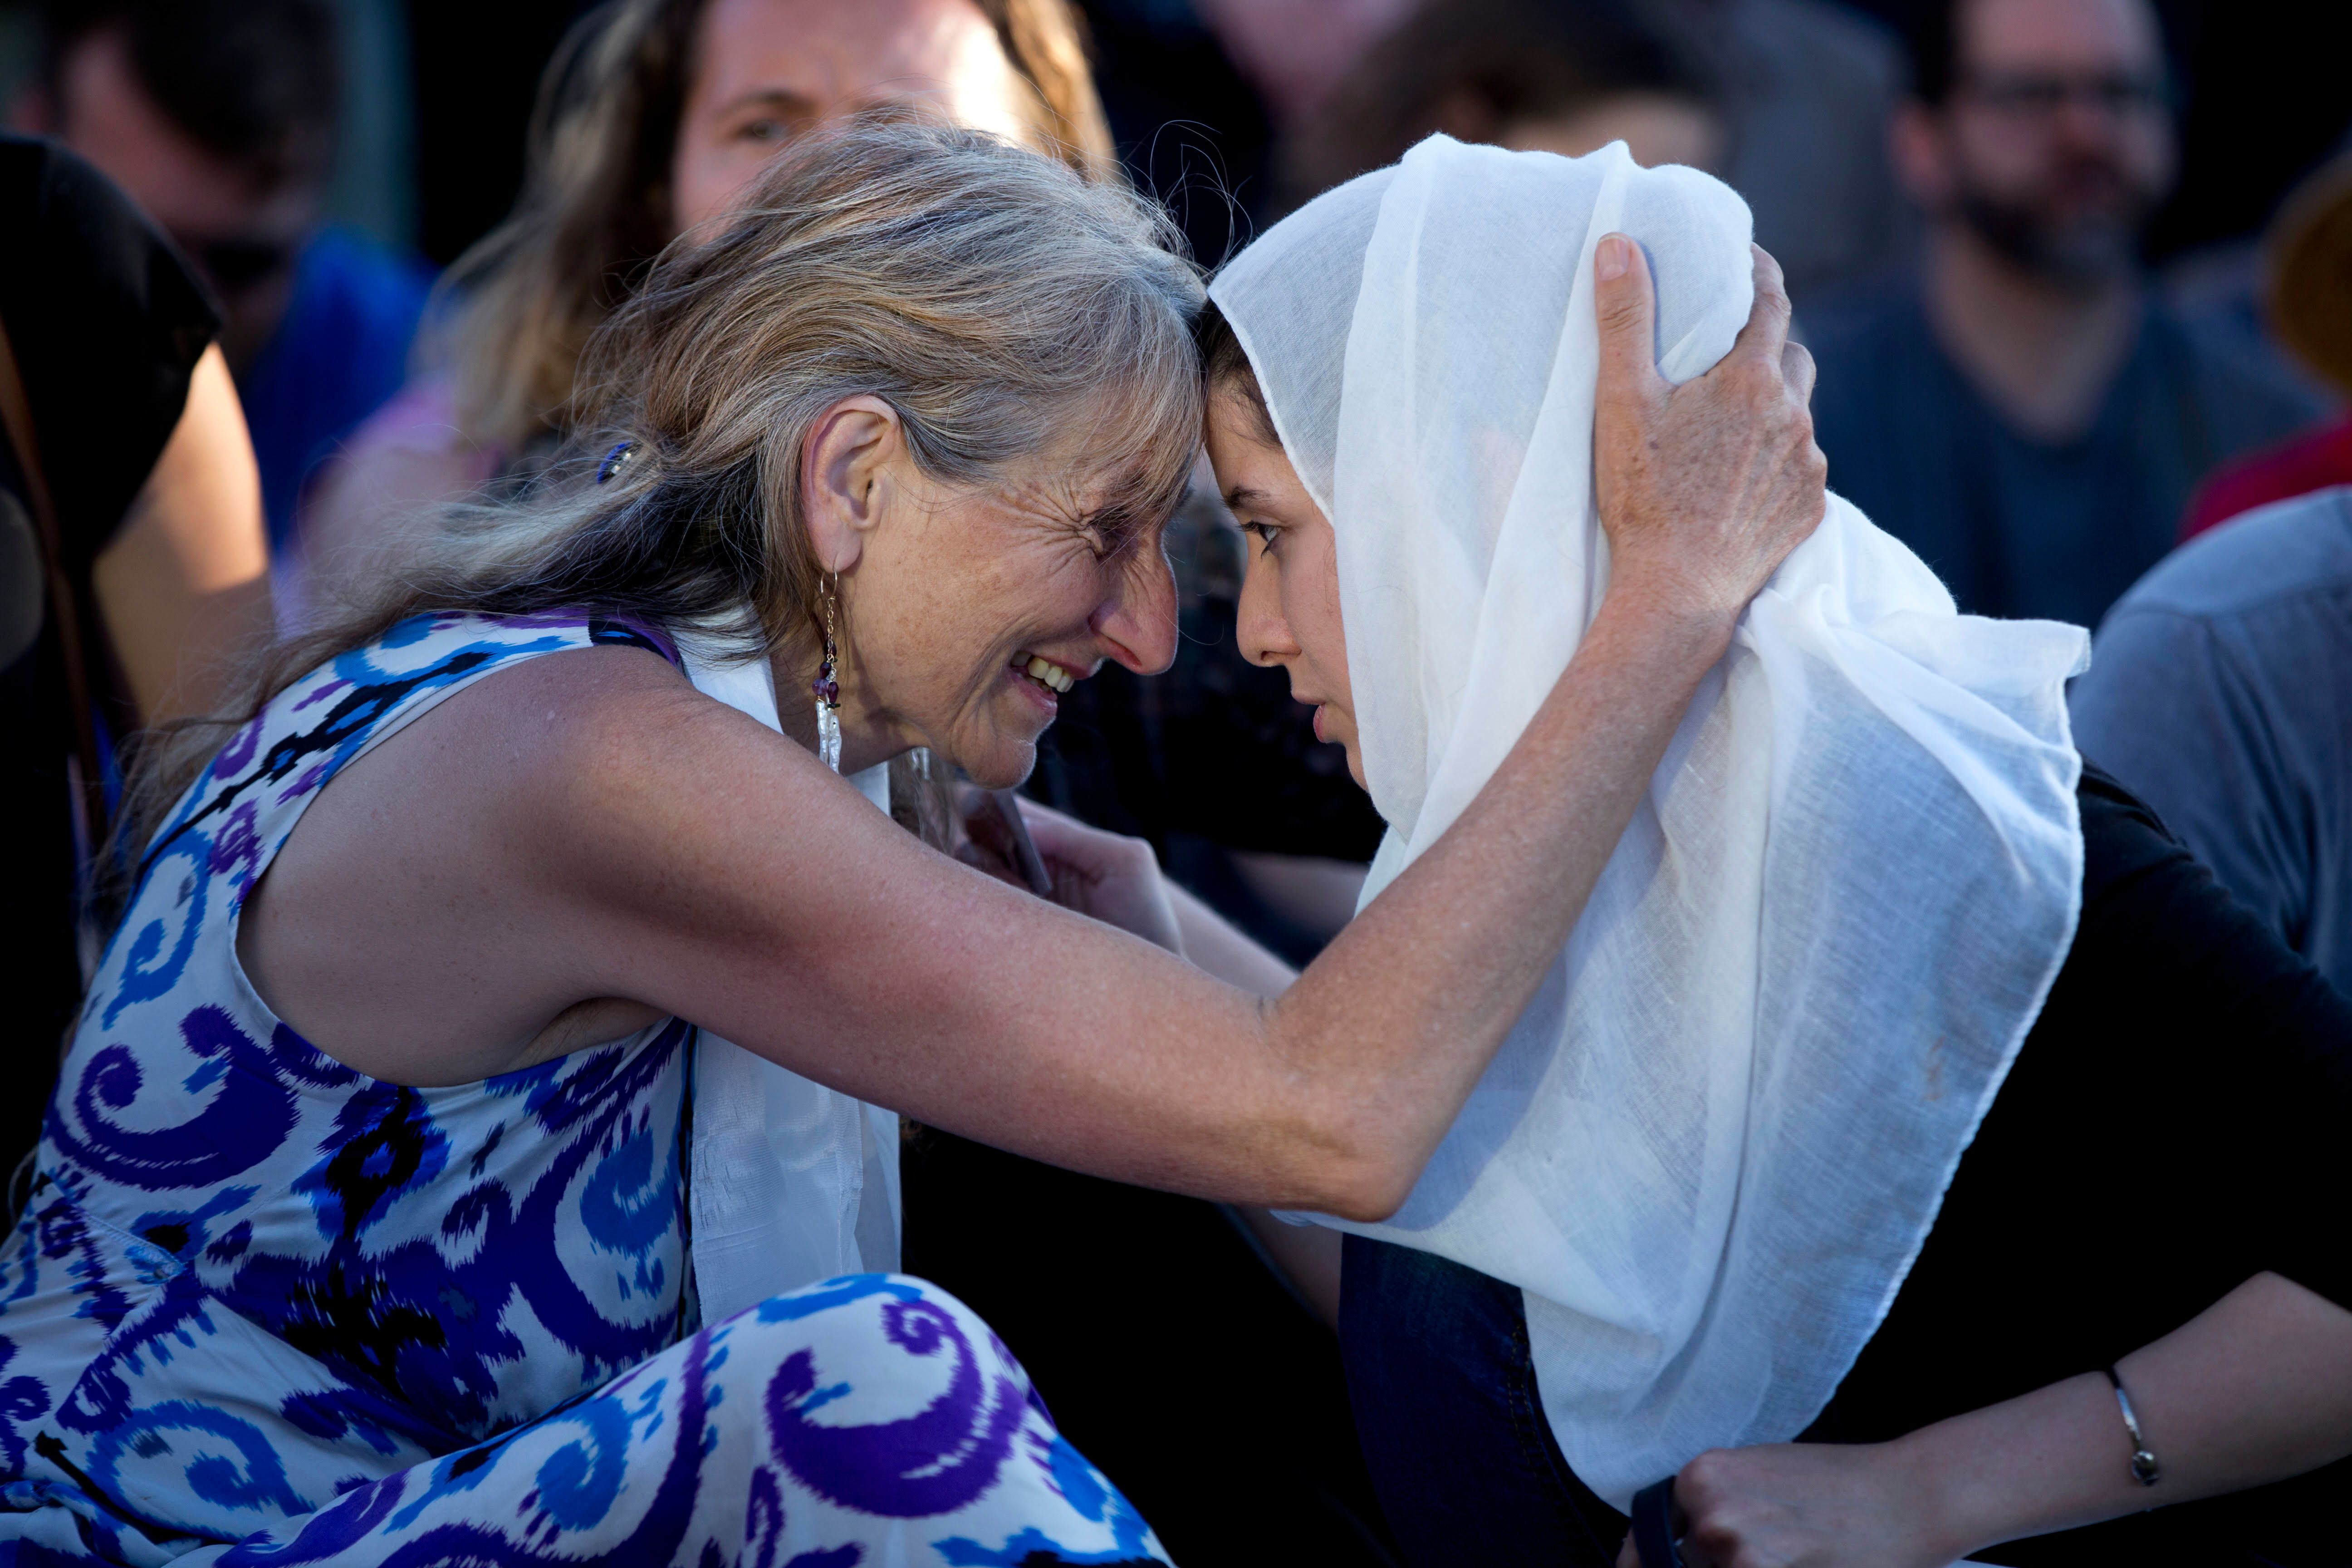 Asha Deliverance, left, the mother of Taliesin Myrddin Namkai-Meche, leans in and embraces a woman who...